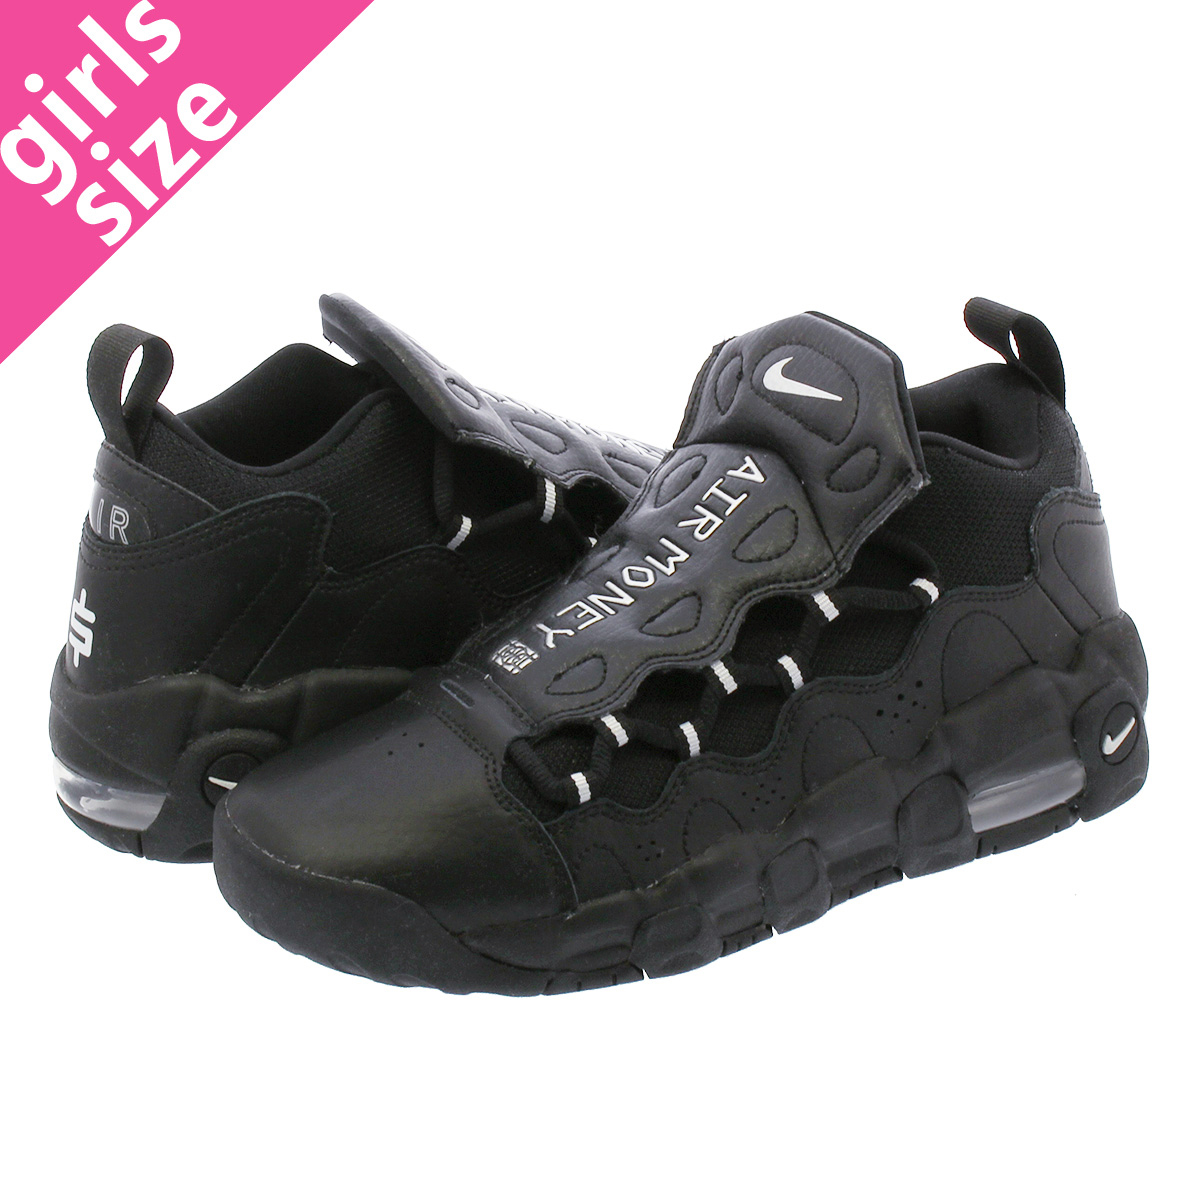 9bbddad91176 NIKE AIR MORE MONEY GS Nike air more money GS BLACK METALLIC SILVER ah5215 -001